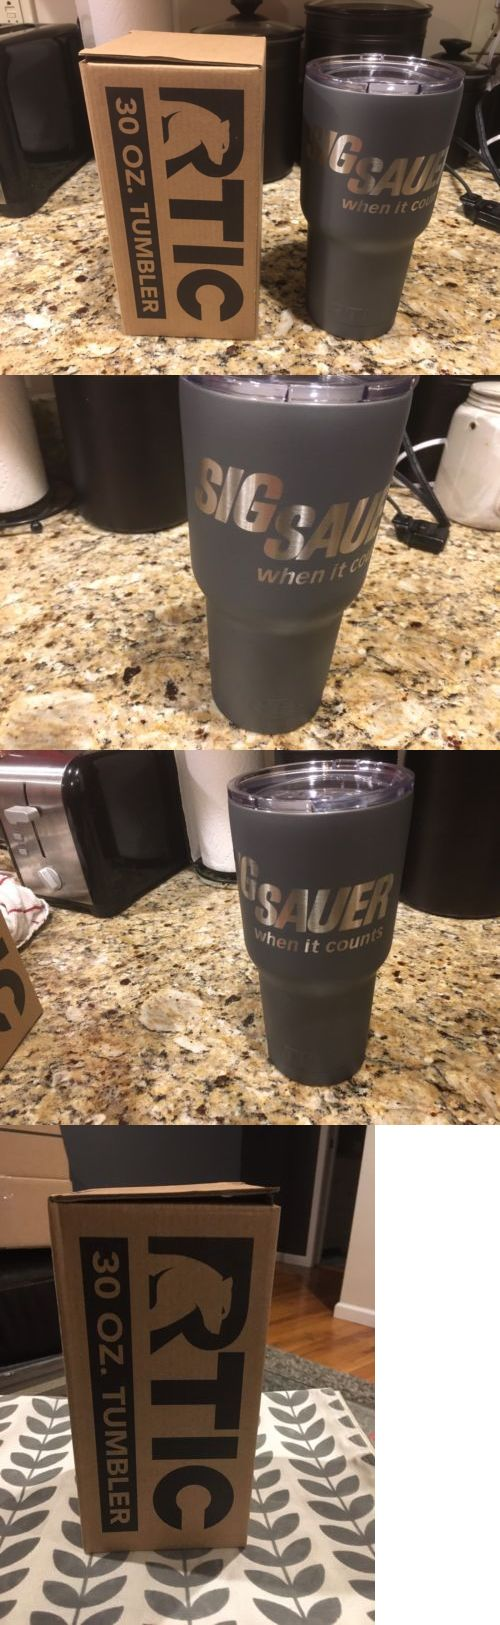 Other Camping Cooking Supplies 16036: Sig Sauer 30 Oz Rtic Tumbler Tactical Gray Cerakote (Yeti Rambler) -> BUY IT NOW ONLY: $45 on eBay!